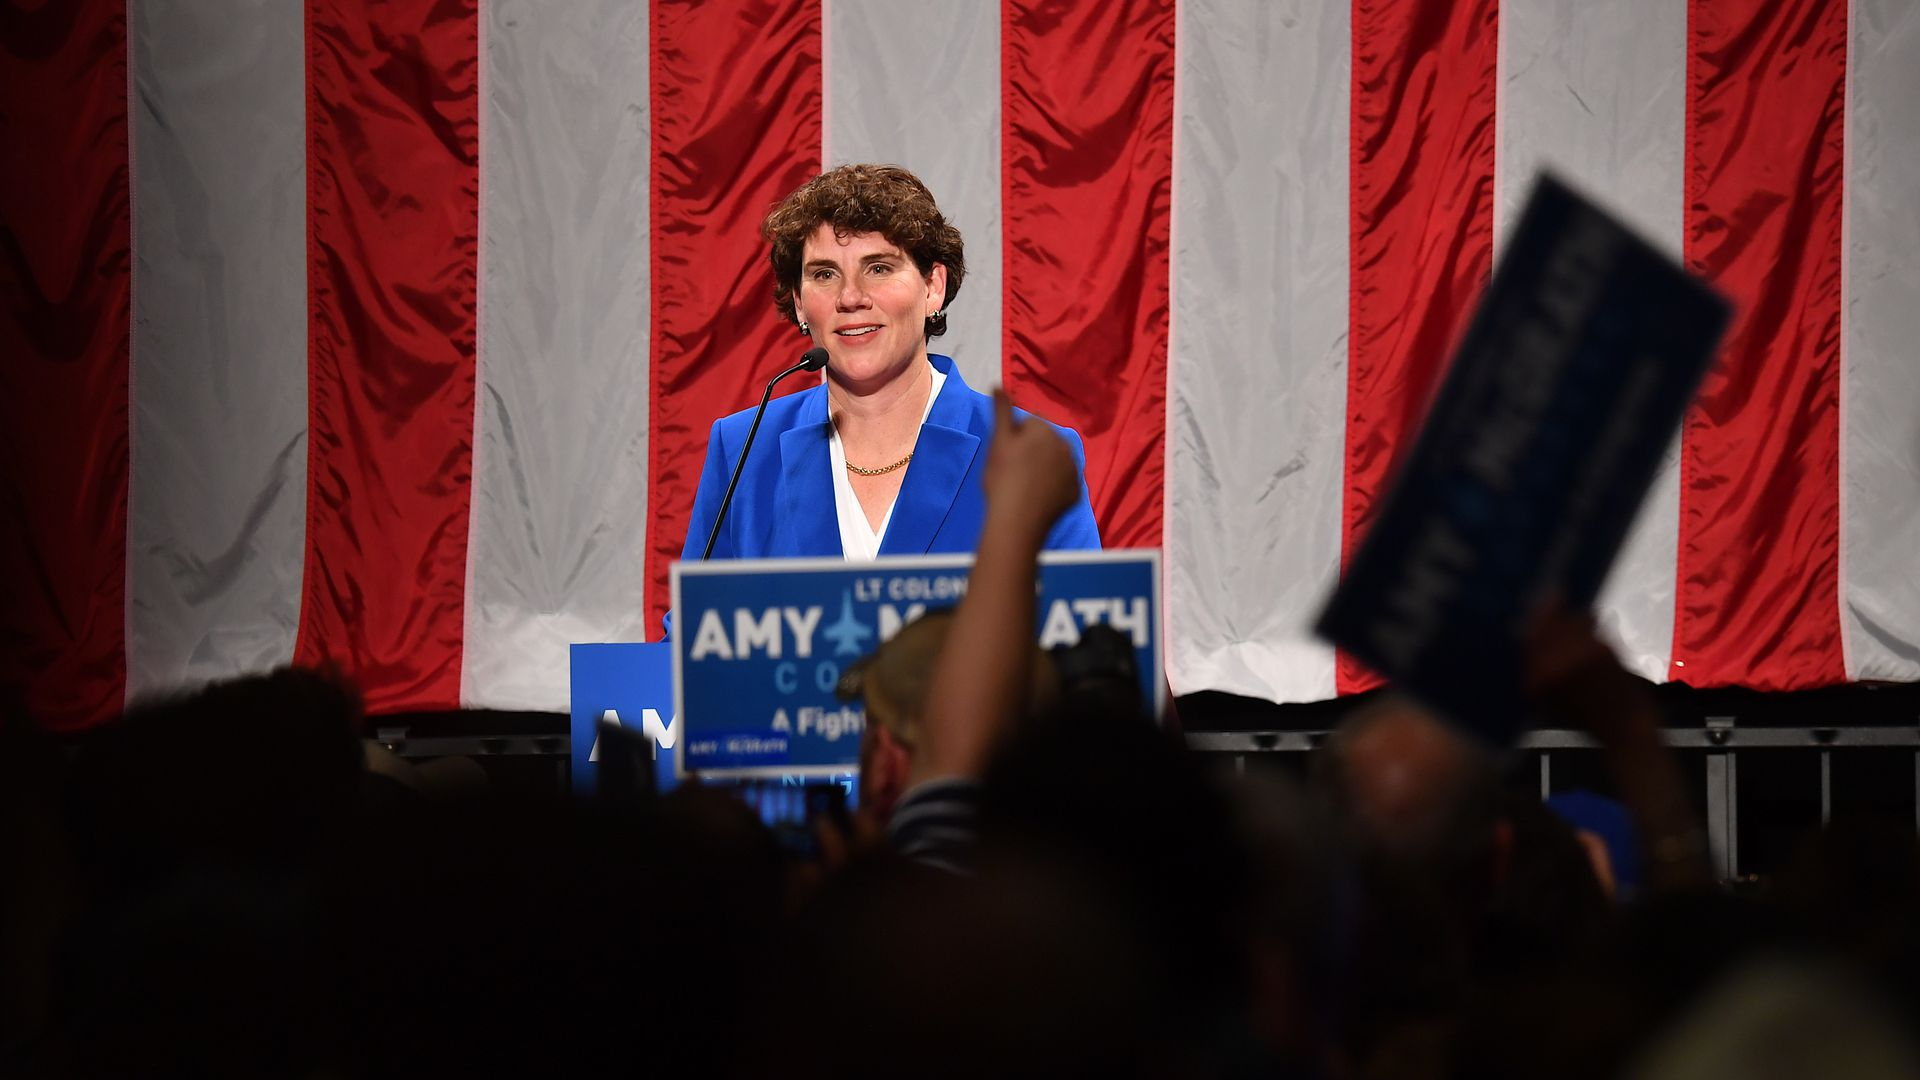 Amy McGrath smiles before campaign crowd.